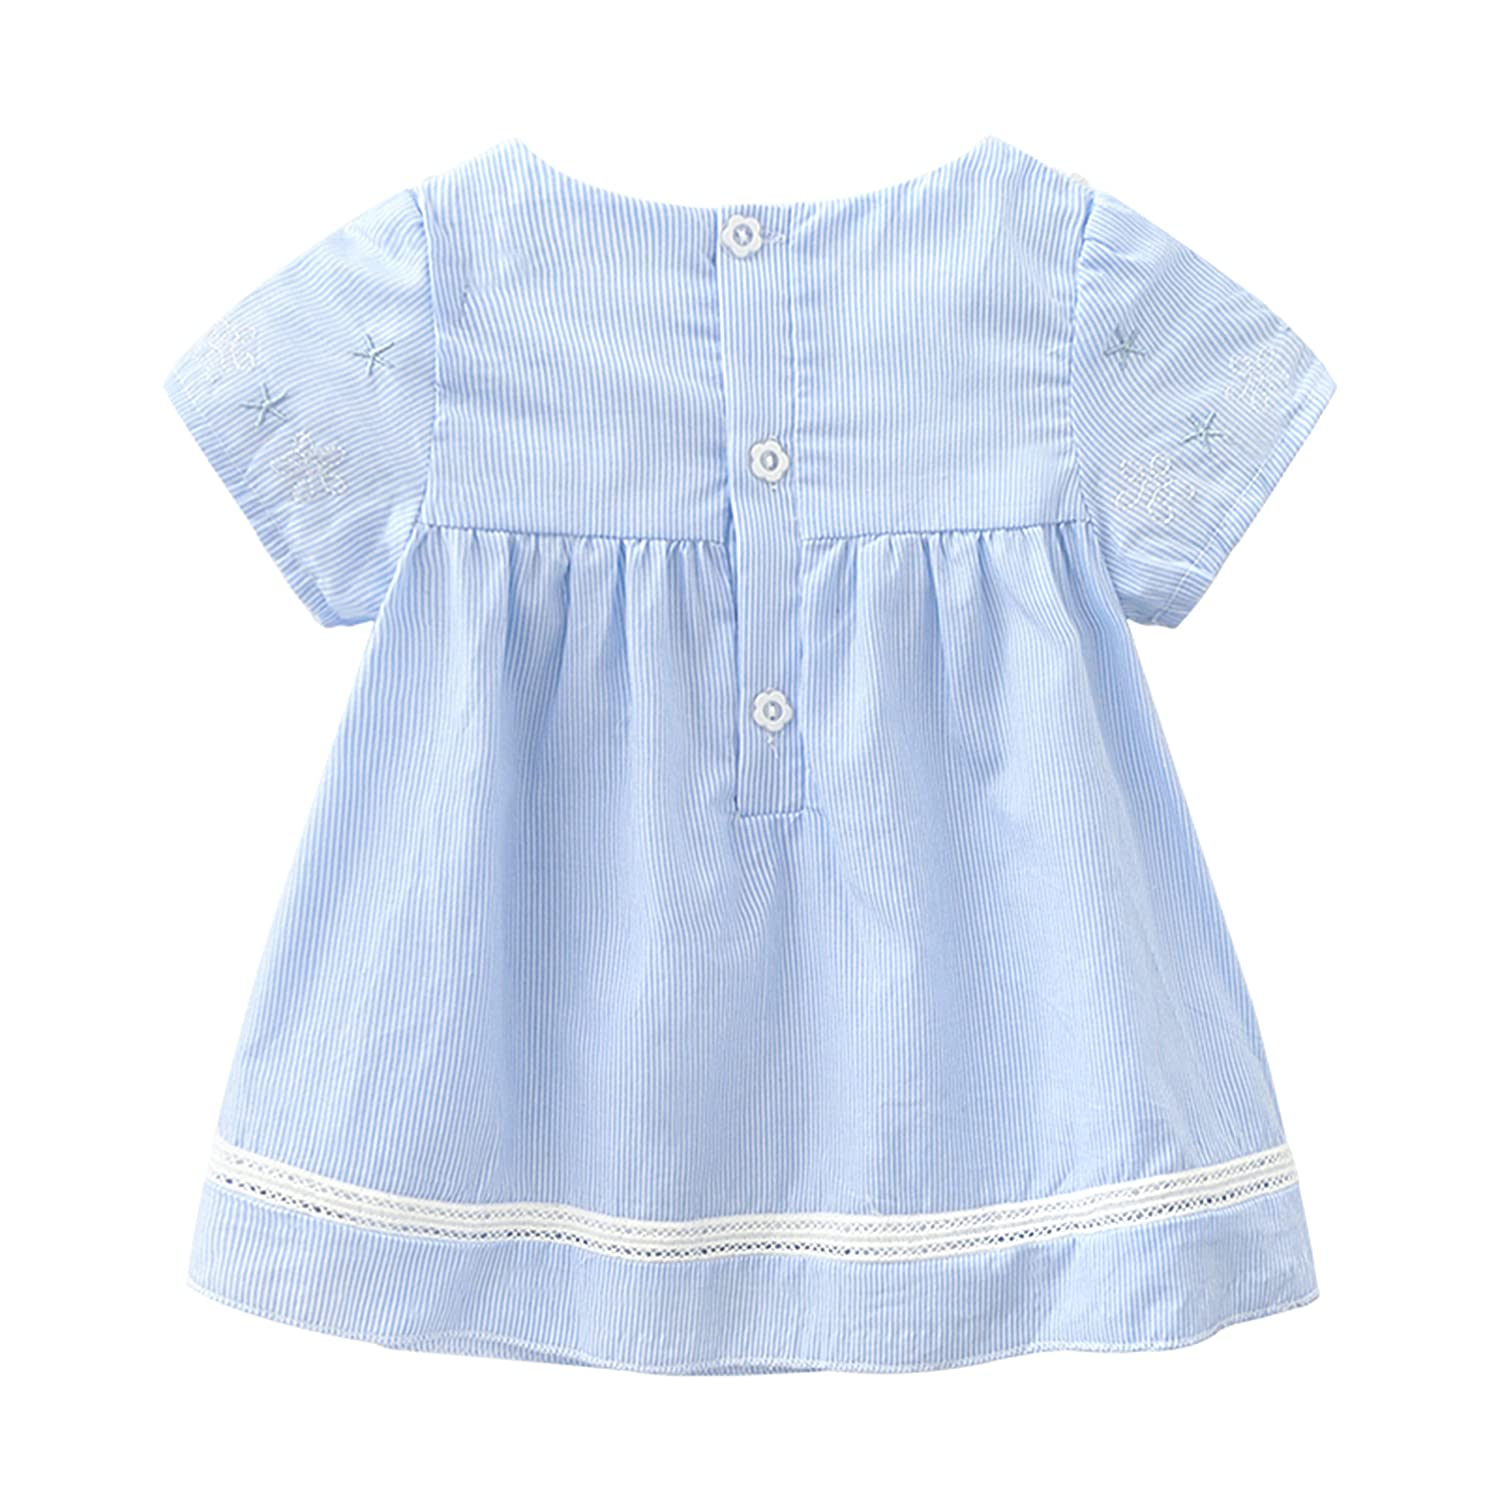 NOMSOCR Toddler Kids Baby Girl 2Pcs Outfit Clothes Set Lace Collar Top Short Pant